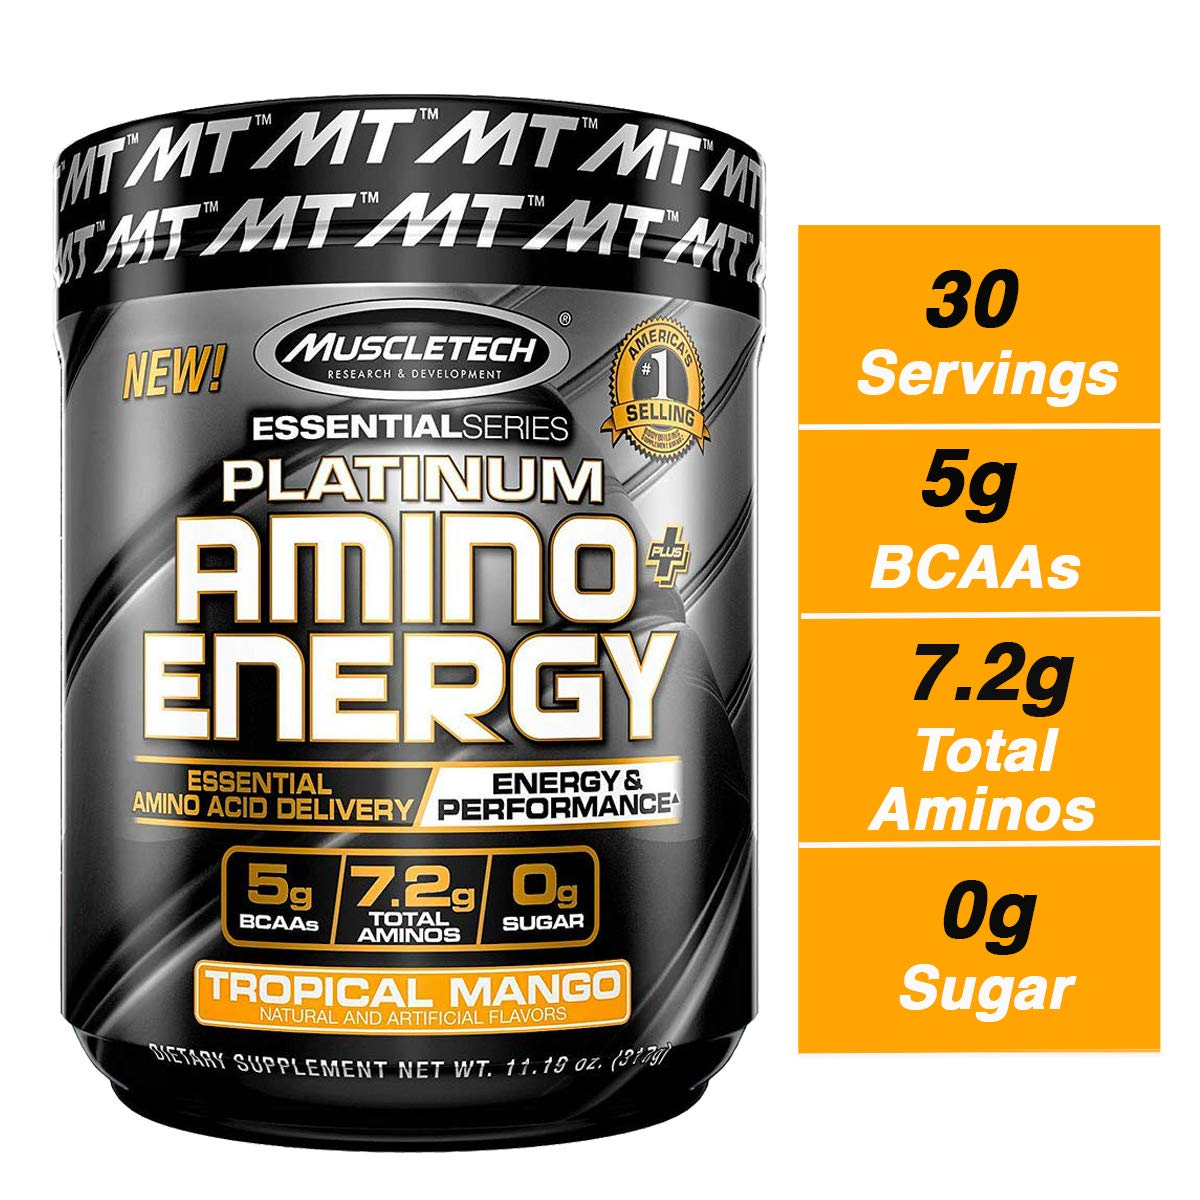 MuscleTech Essential Series Platinum Amino Plus Energy BCAA Powder, Tropical Mango, 11.19 Ounce, 30 Serving by MuscleTech